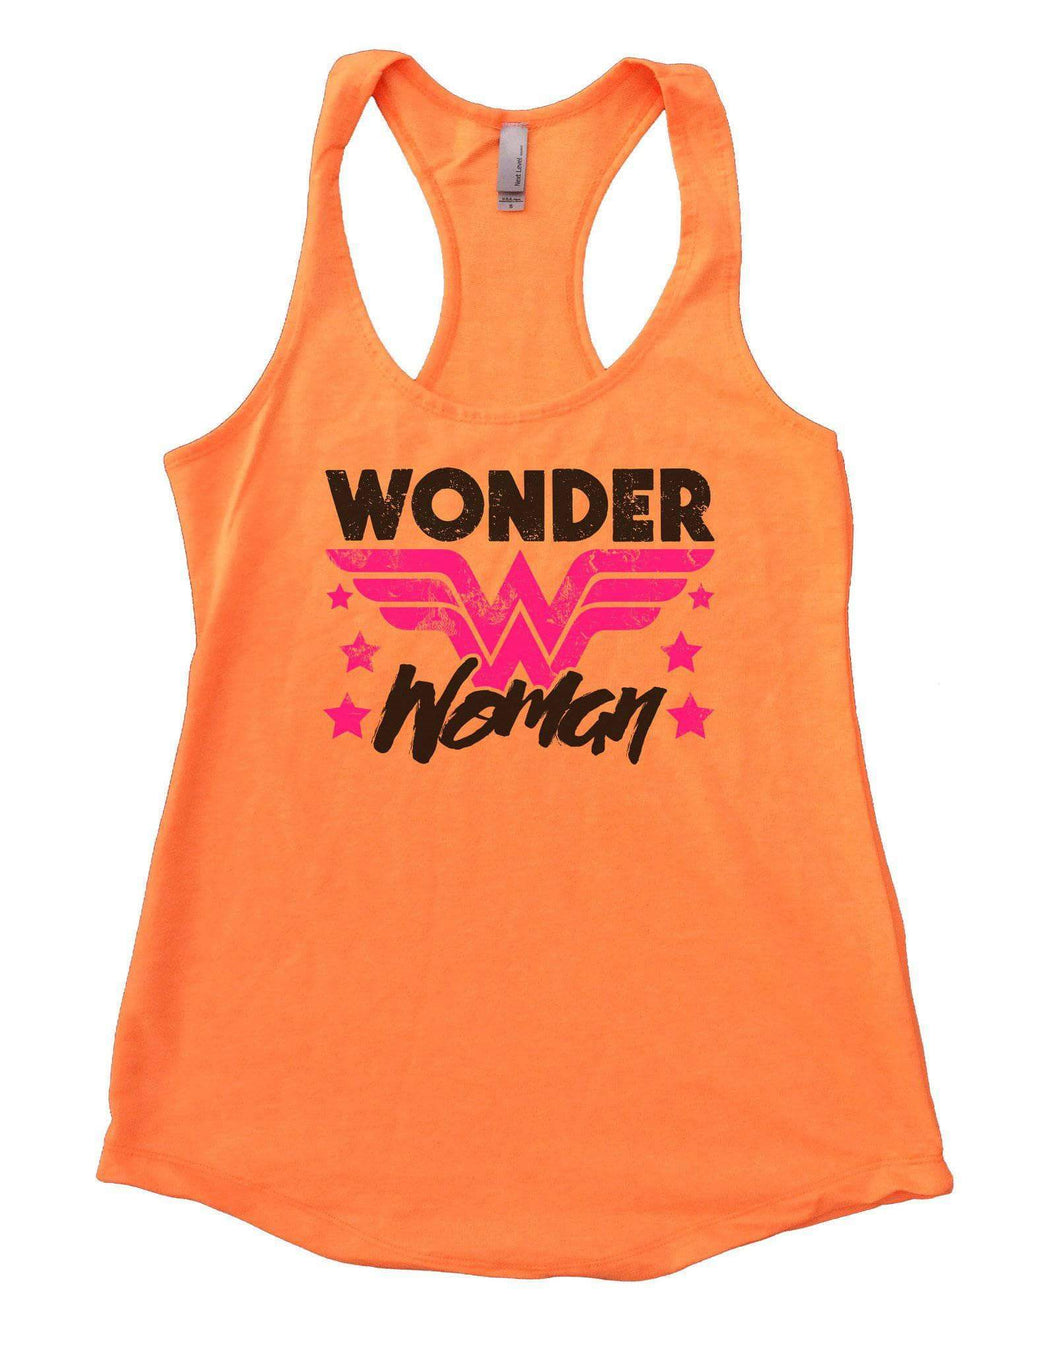 Wonder Woman Womens Workout Tank Top Small Womens Tank Tops Neon Orange